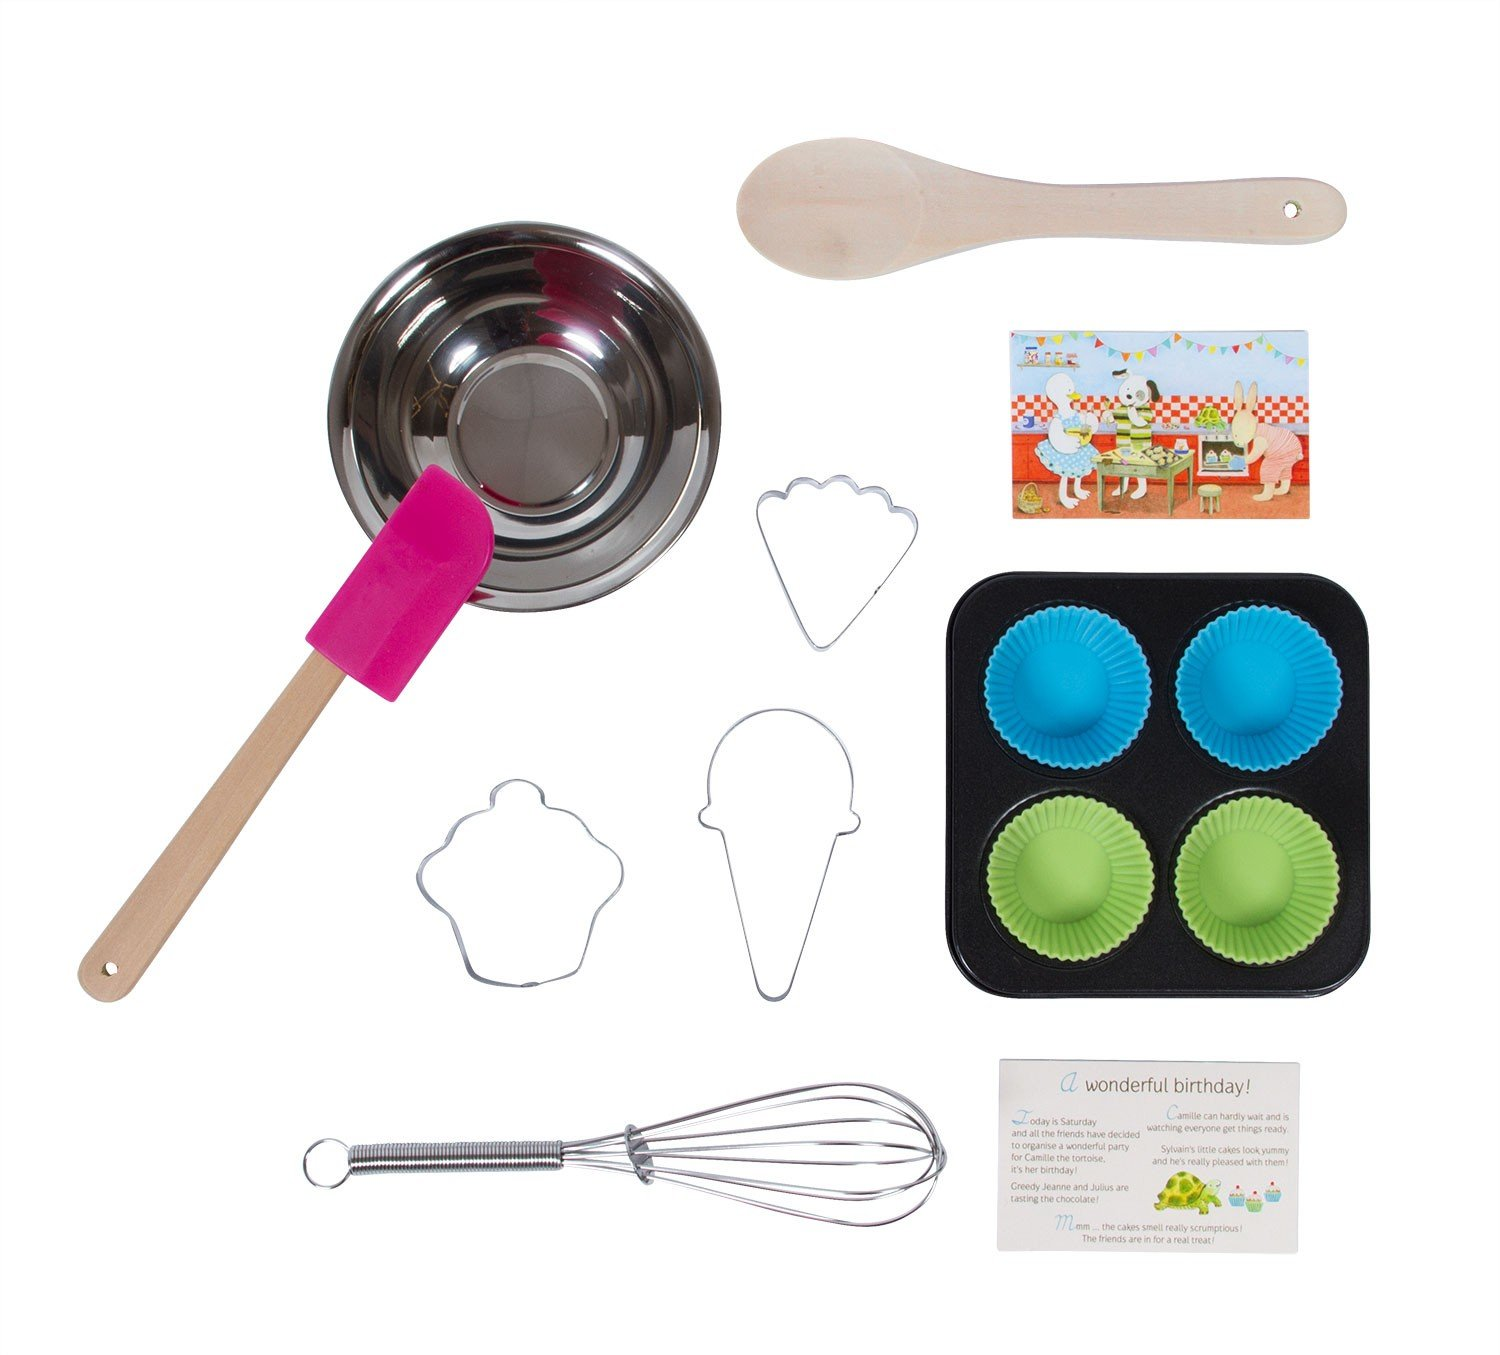 Moulin Roty Je Fais Des Gateaux ''I Am Baking Pastries!'' Child Sized Cooking Tools Toy Set in Carry Suitcase by Le Grande Famille (Image #2)